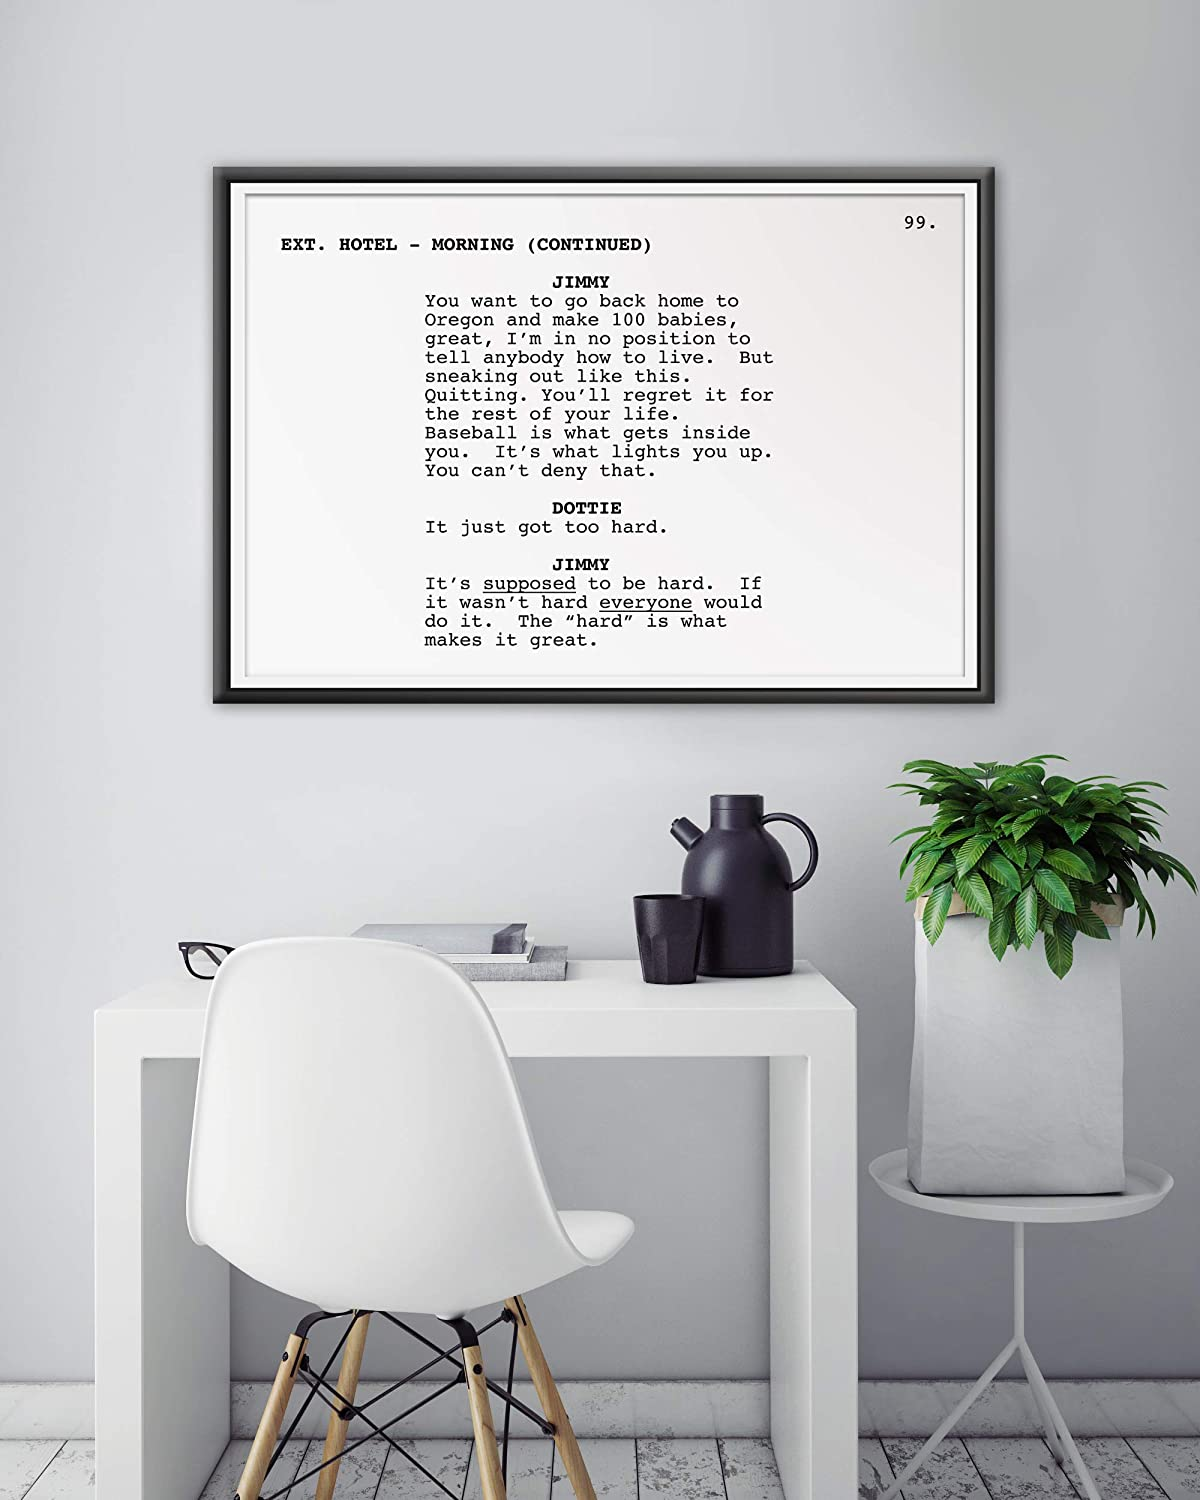 Tom Hanks Movie up to full-size 24 x 36 Script A League of Their Own Screenplay POSTER! Acting Film Geena Davis - Minimalist